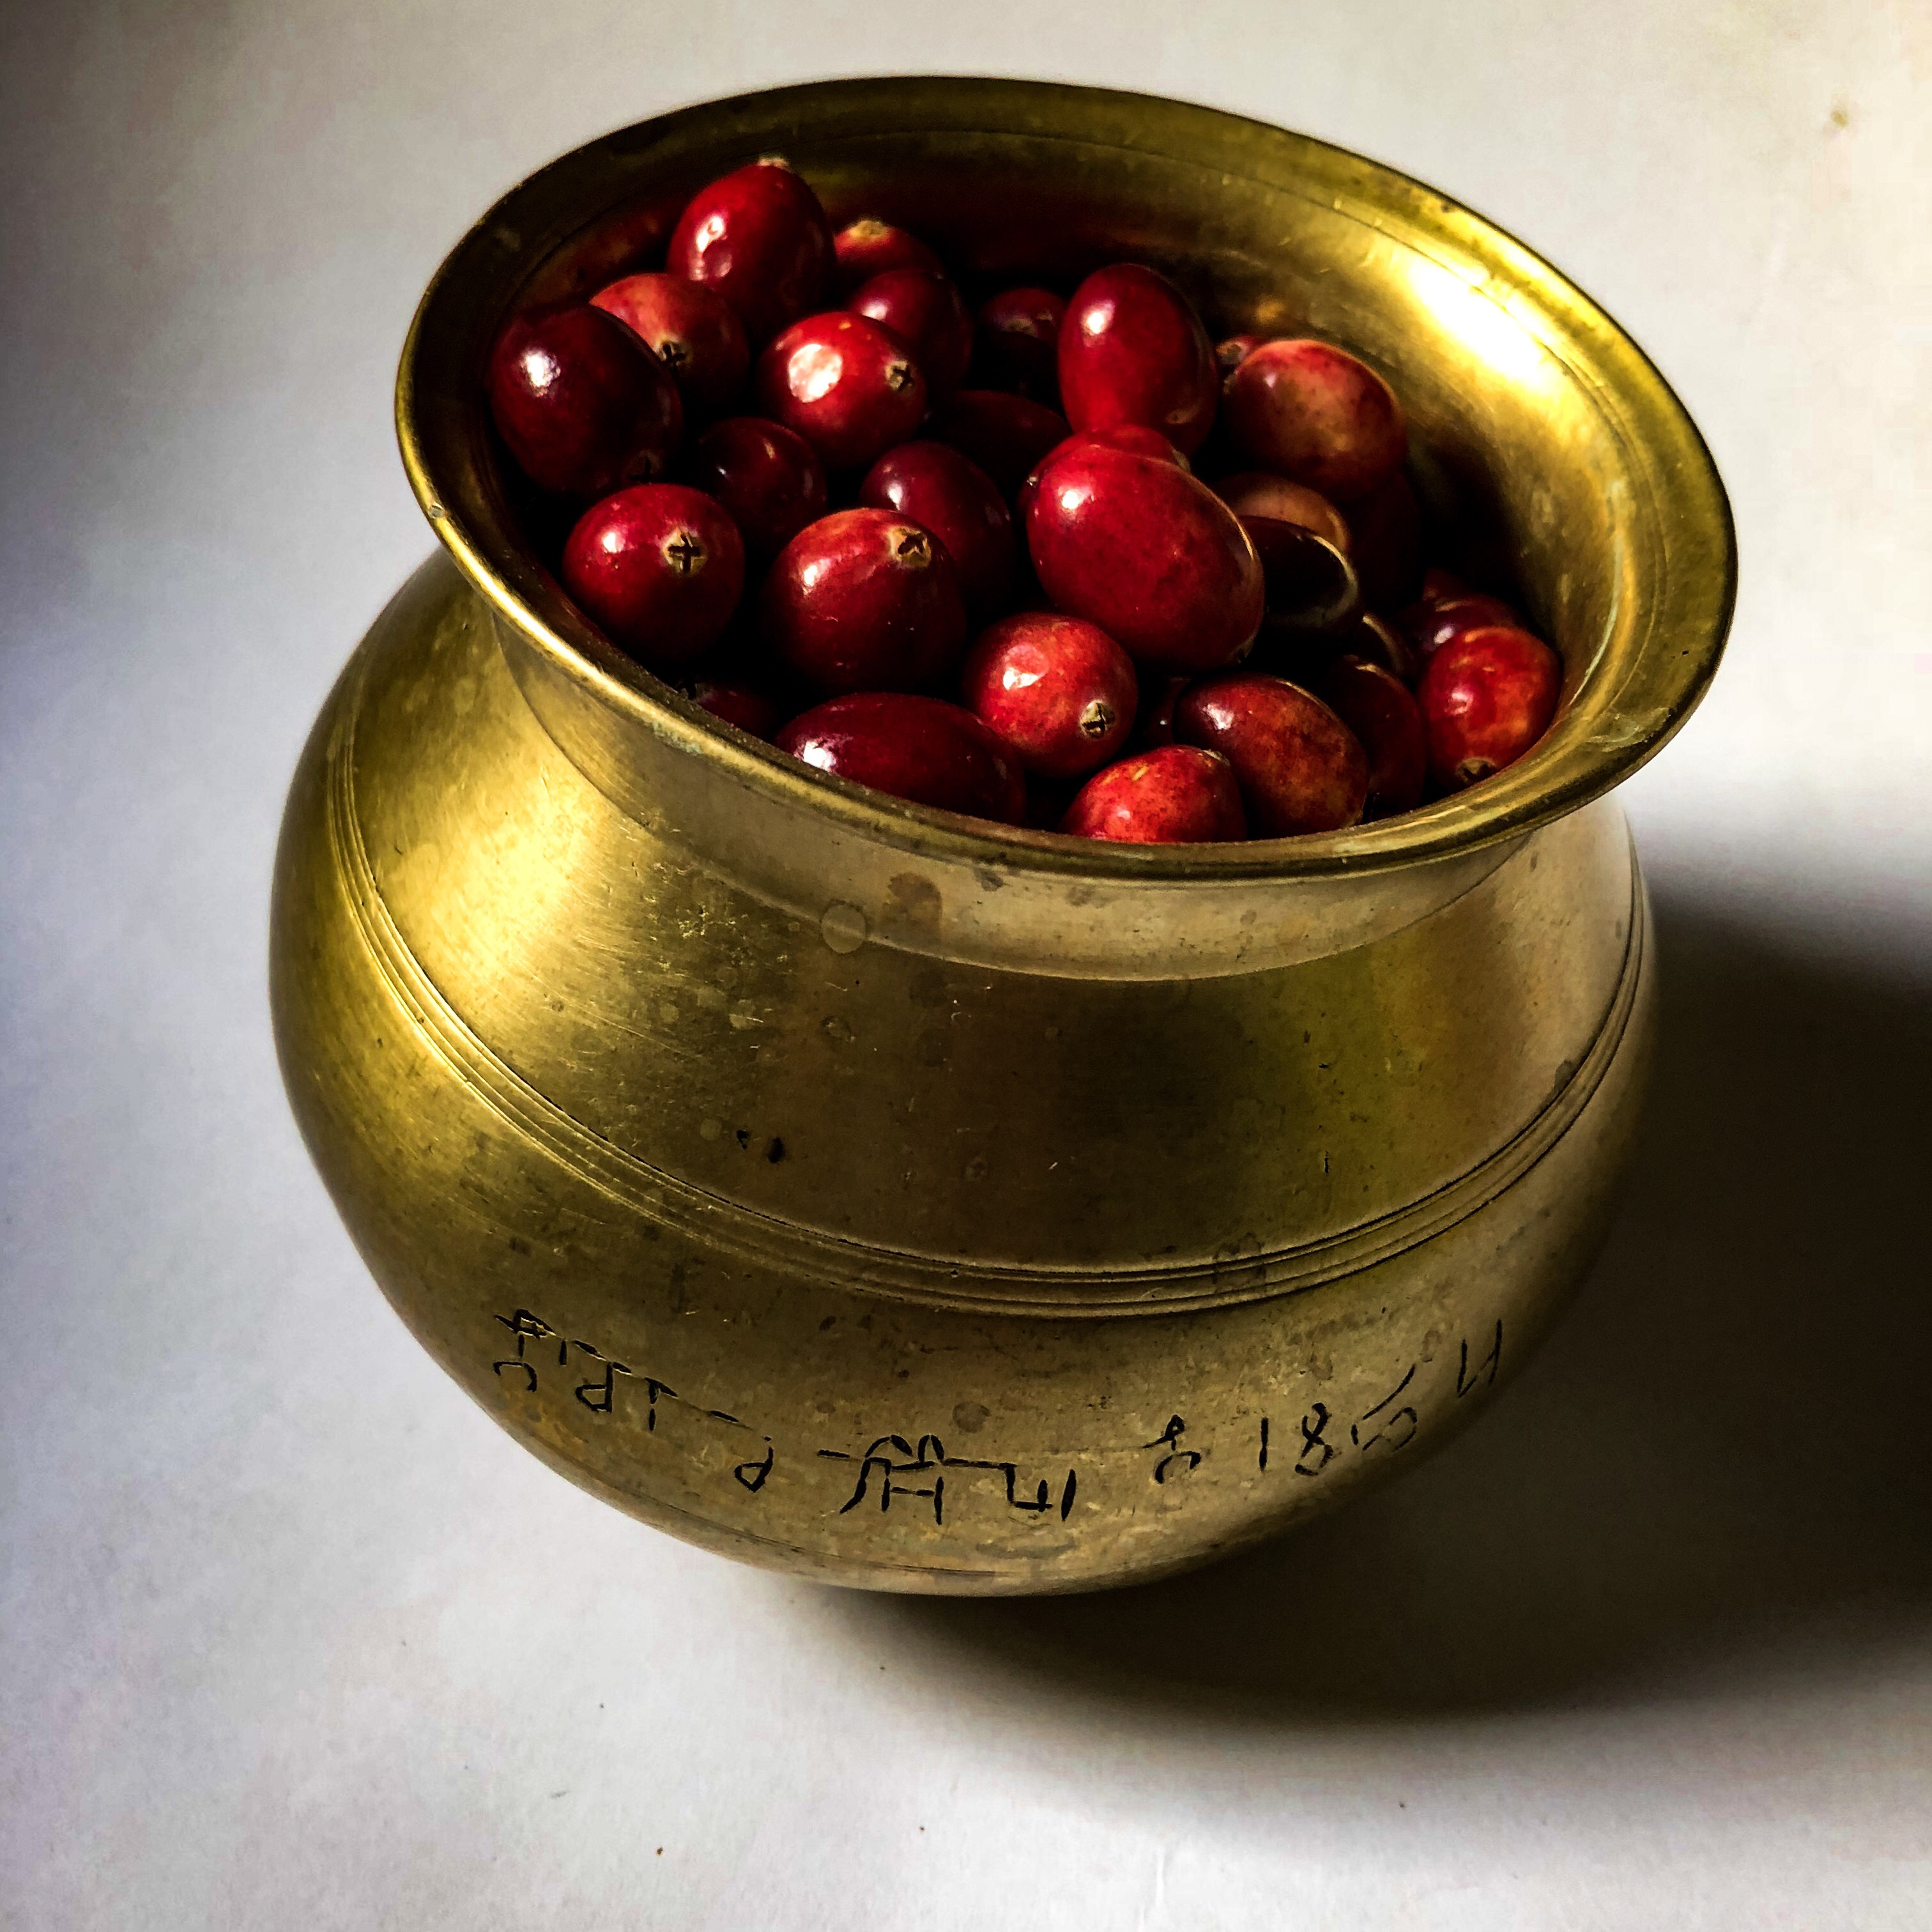 Recipe for making cranberry chutney